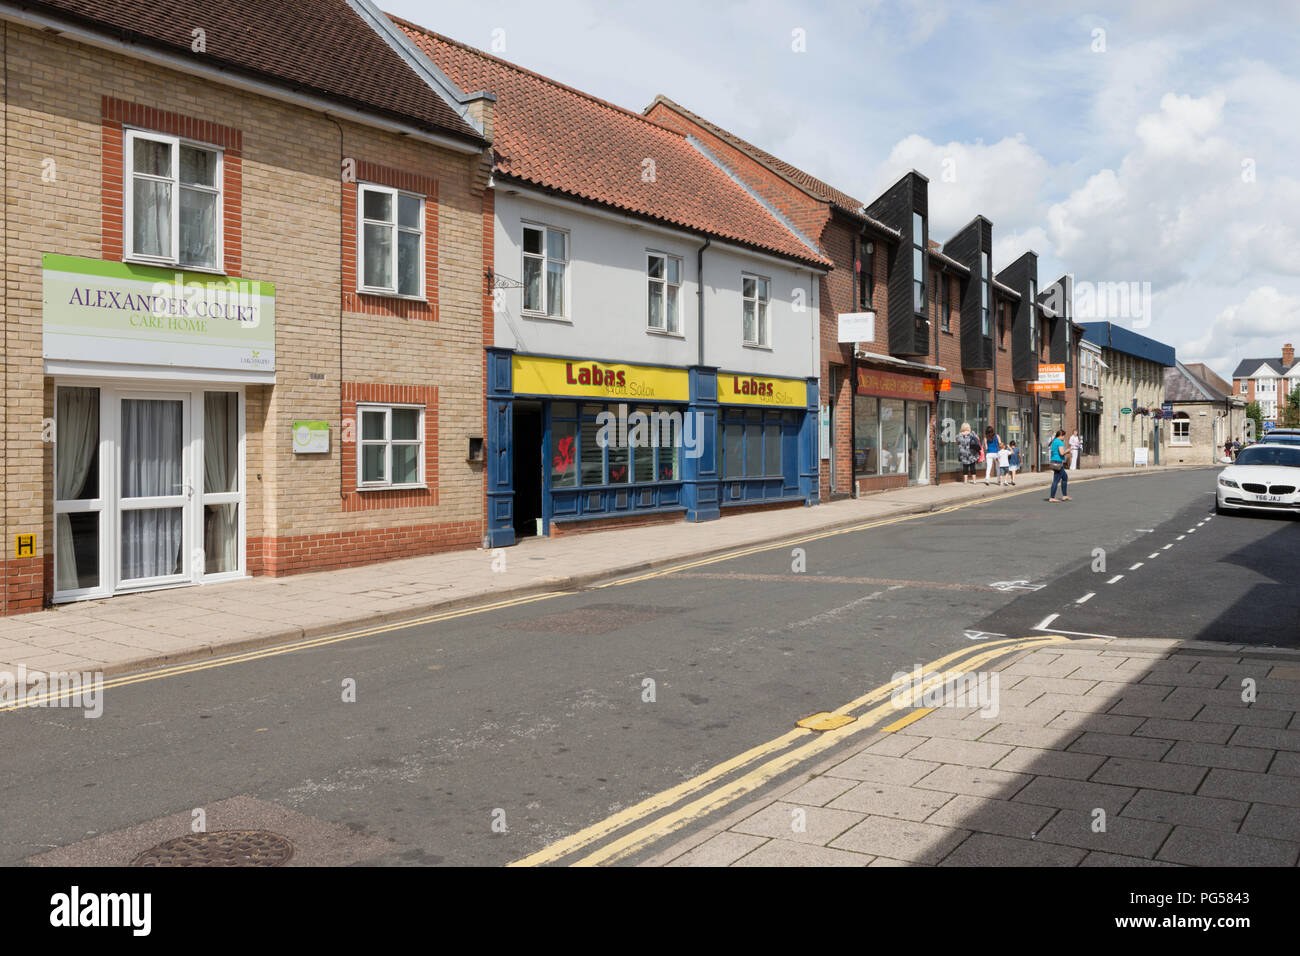 Alexander Court, shops and businesses in Guildhall Street, Thetford. Unsharpened - Stock Image